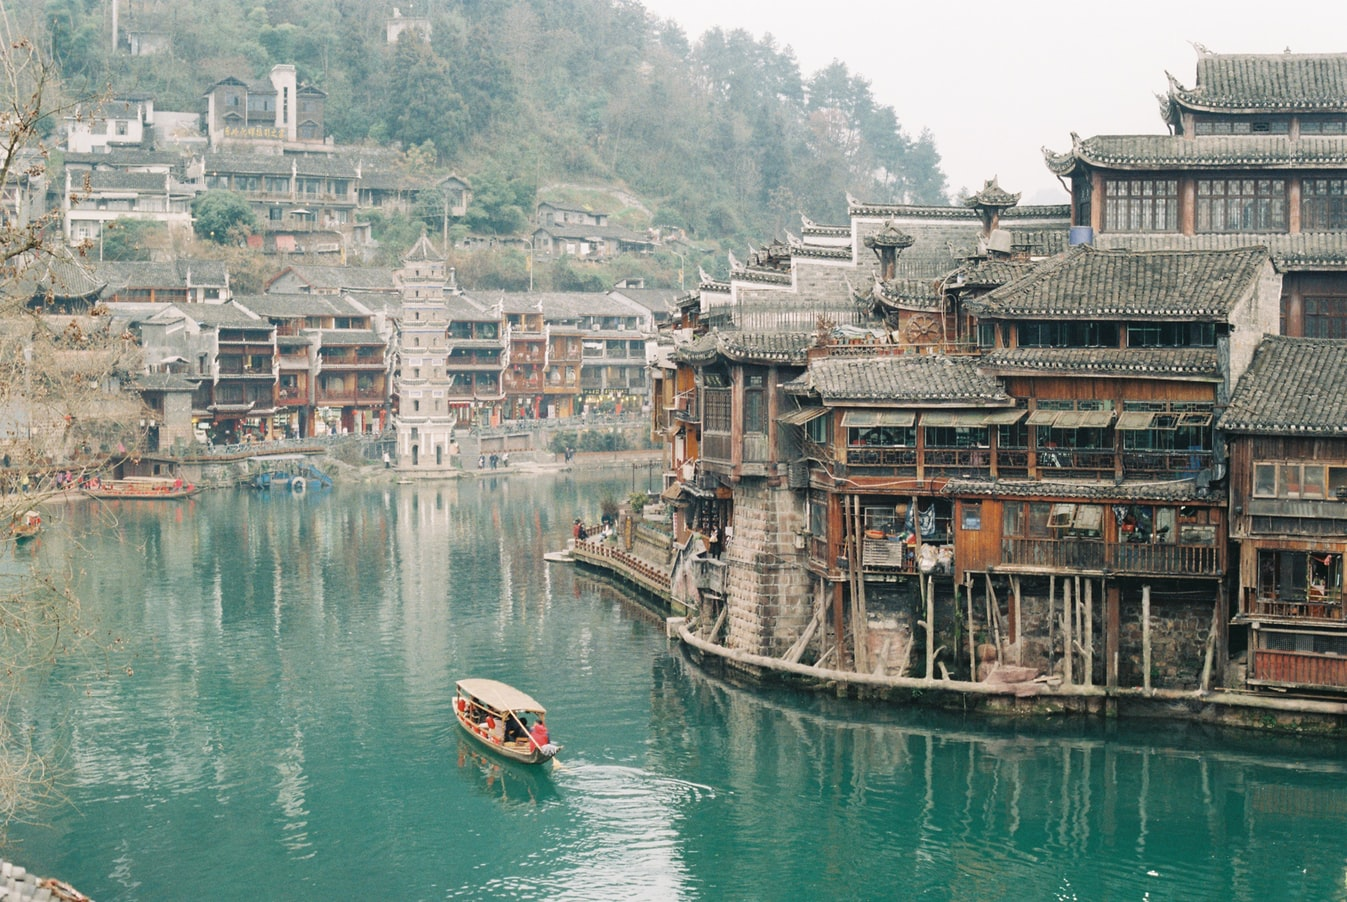 fenghuang in china, ancient town, fairy tale villages to visit world wide